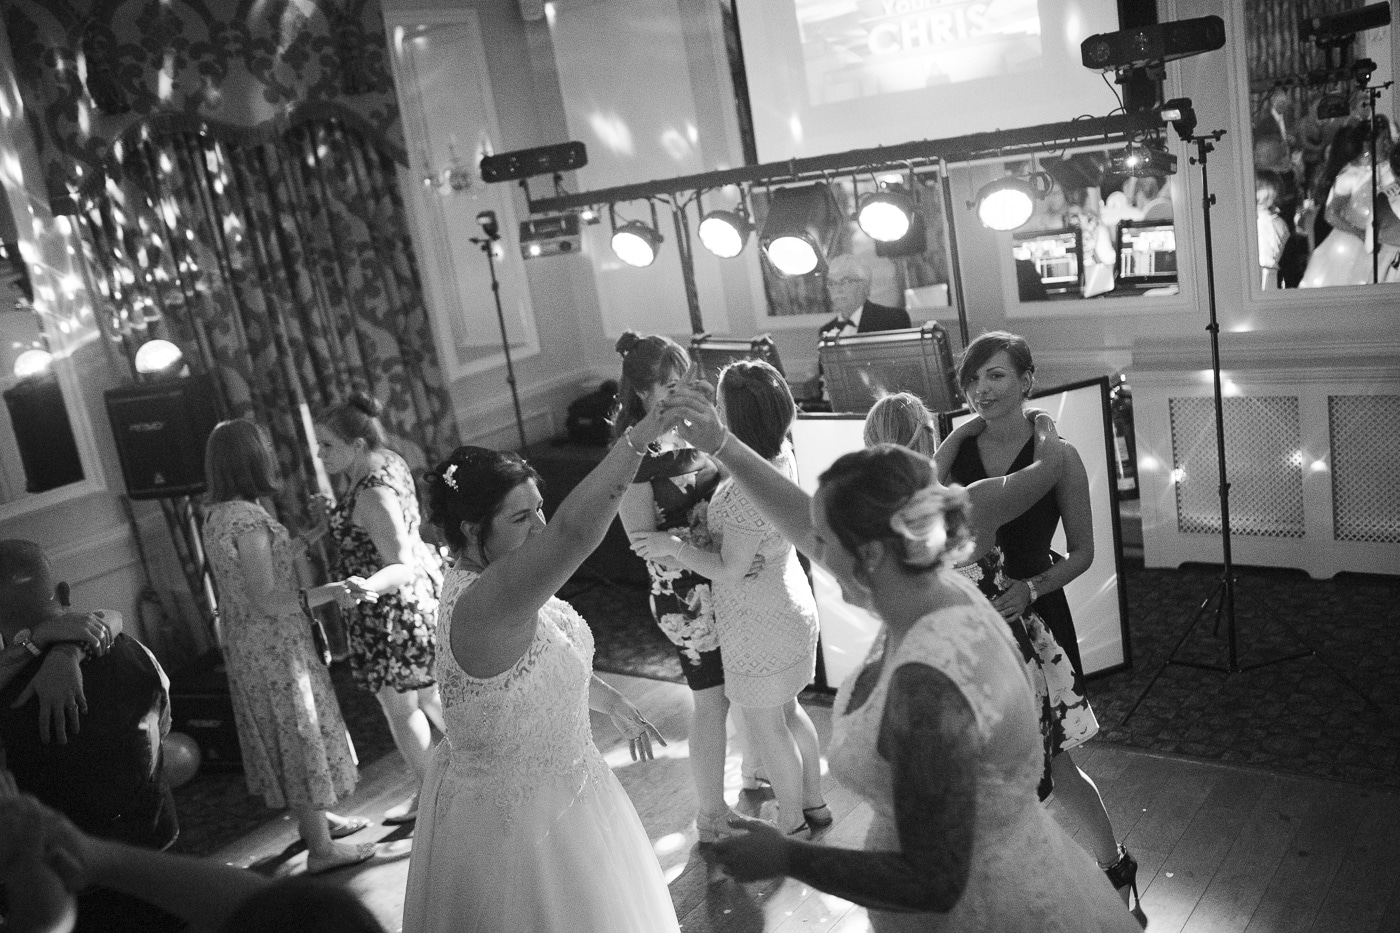 Guests on the dancefloor for wedding photography by Joshua Wyborn